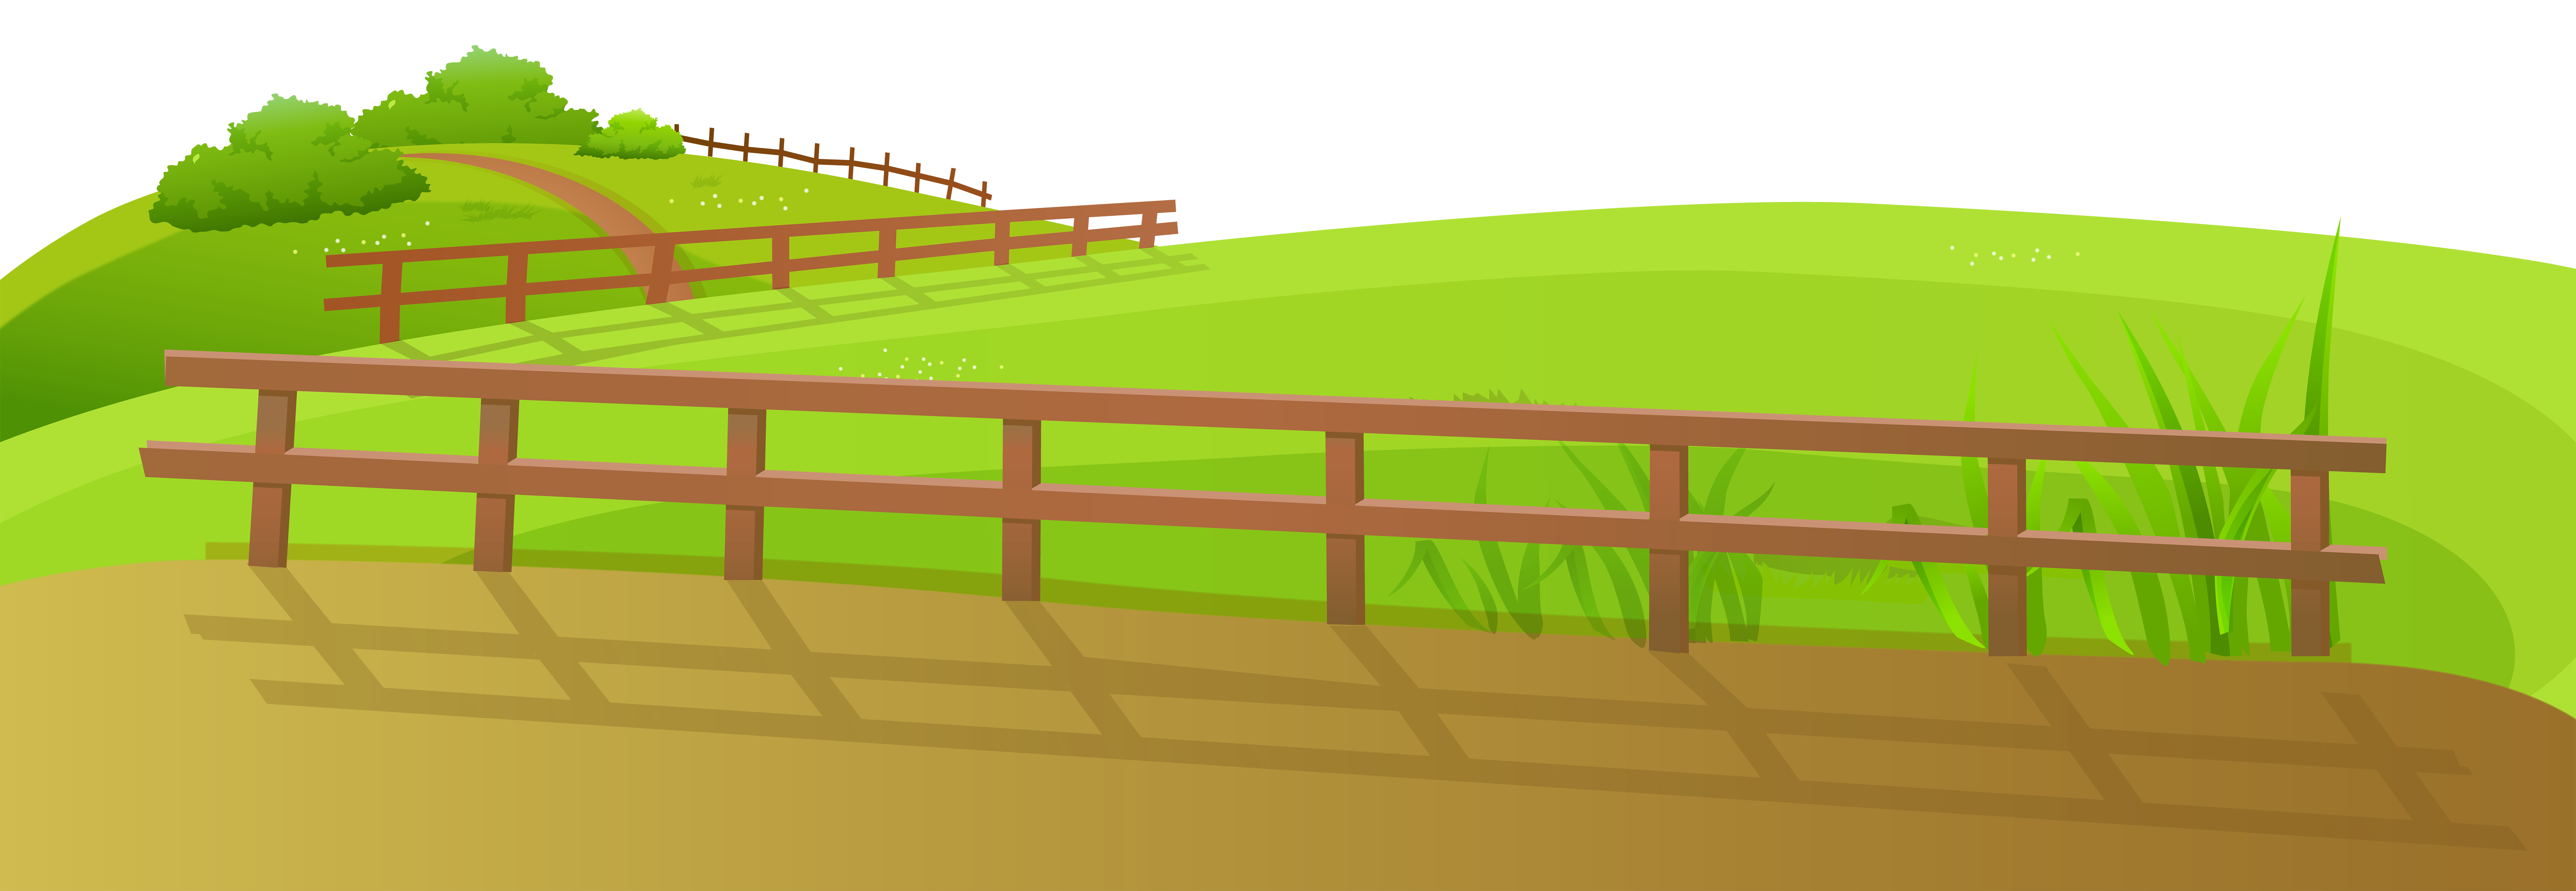 School fence clipart svg download Grass Ground with Fence PNG Clip Art Image | Gallery Yopriceville ... svg download